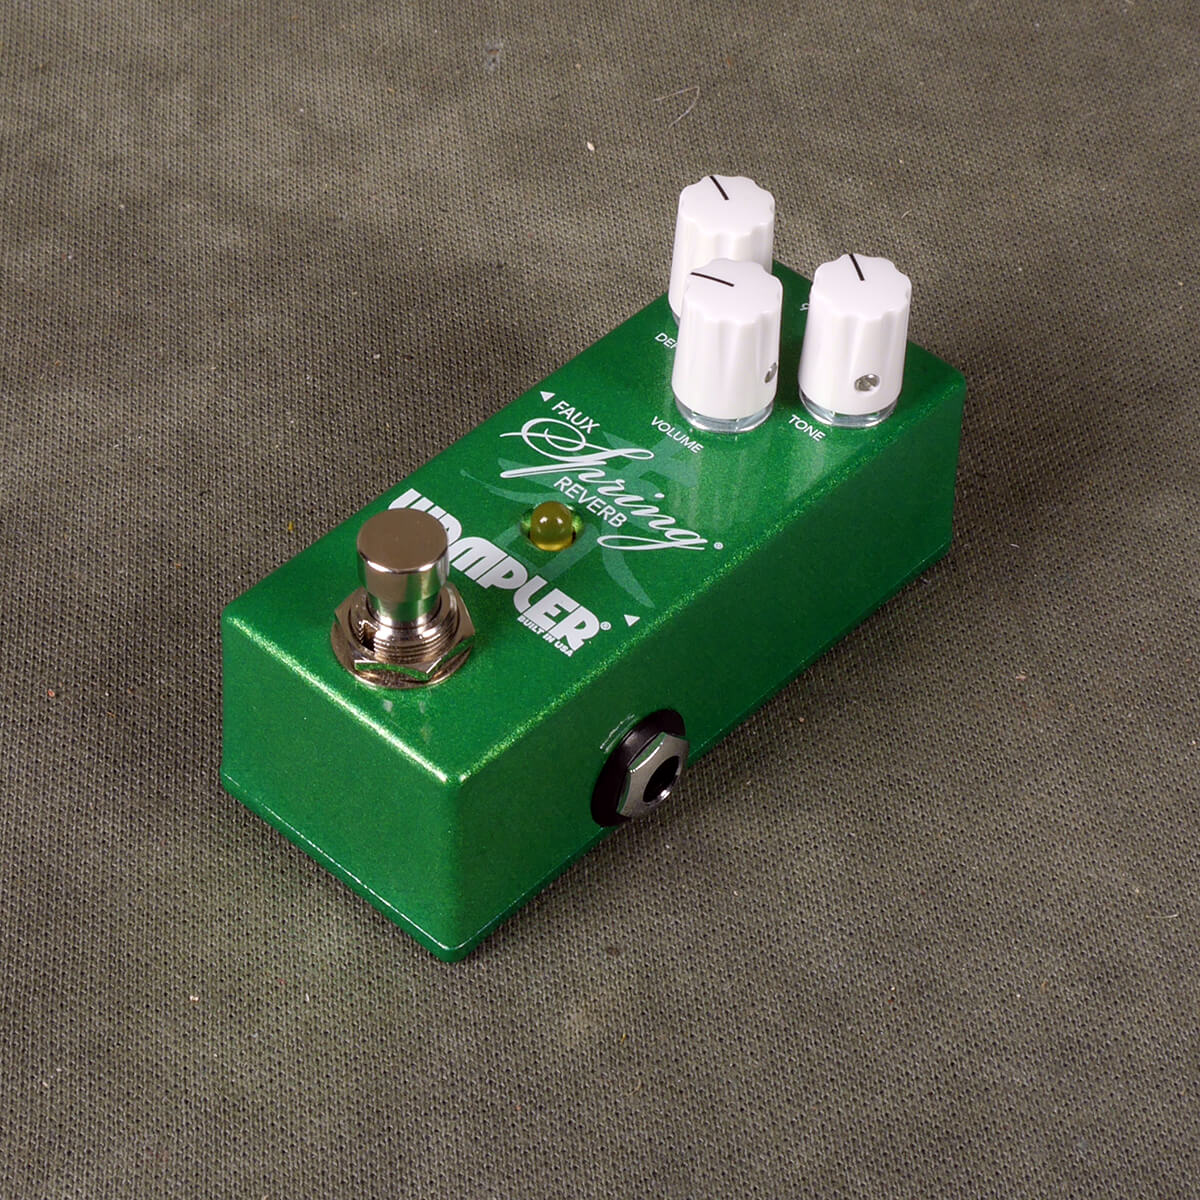 Wampler Mini Faux Spring Reverb FX Pedal - 2nd Hand